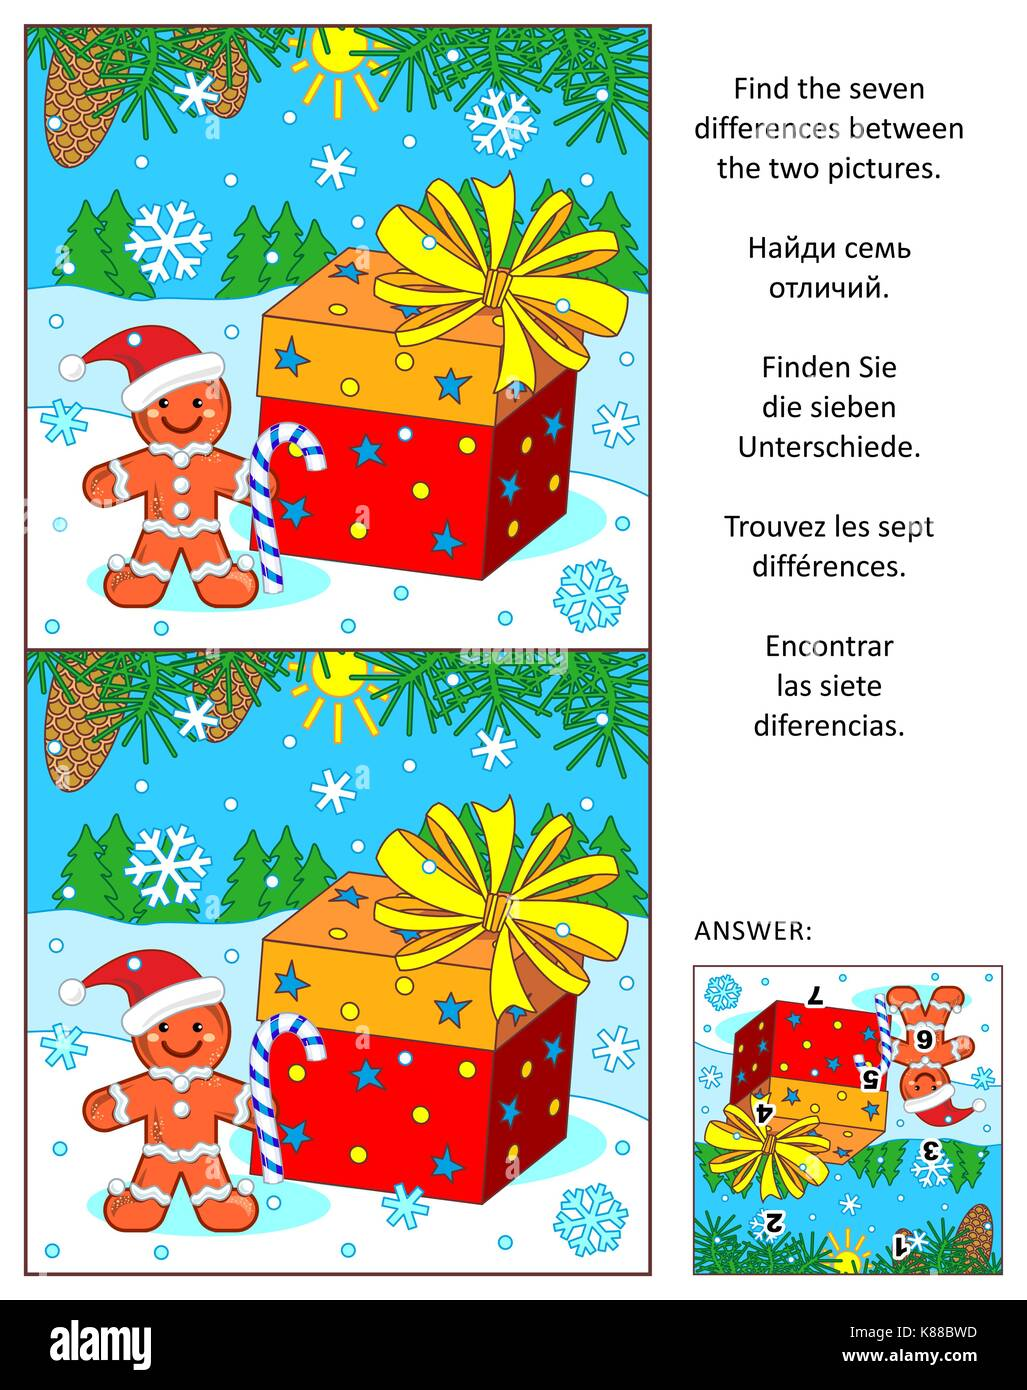 Christmas or New Year visual puzzle: Find the seven differences between the two pictures of ginger man, present, - Stock Image